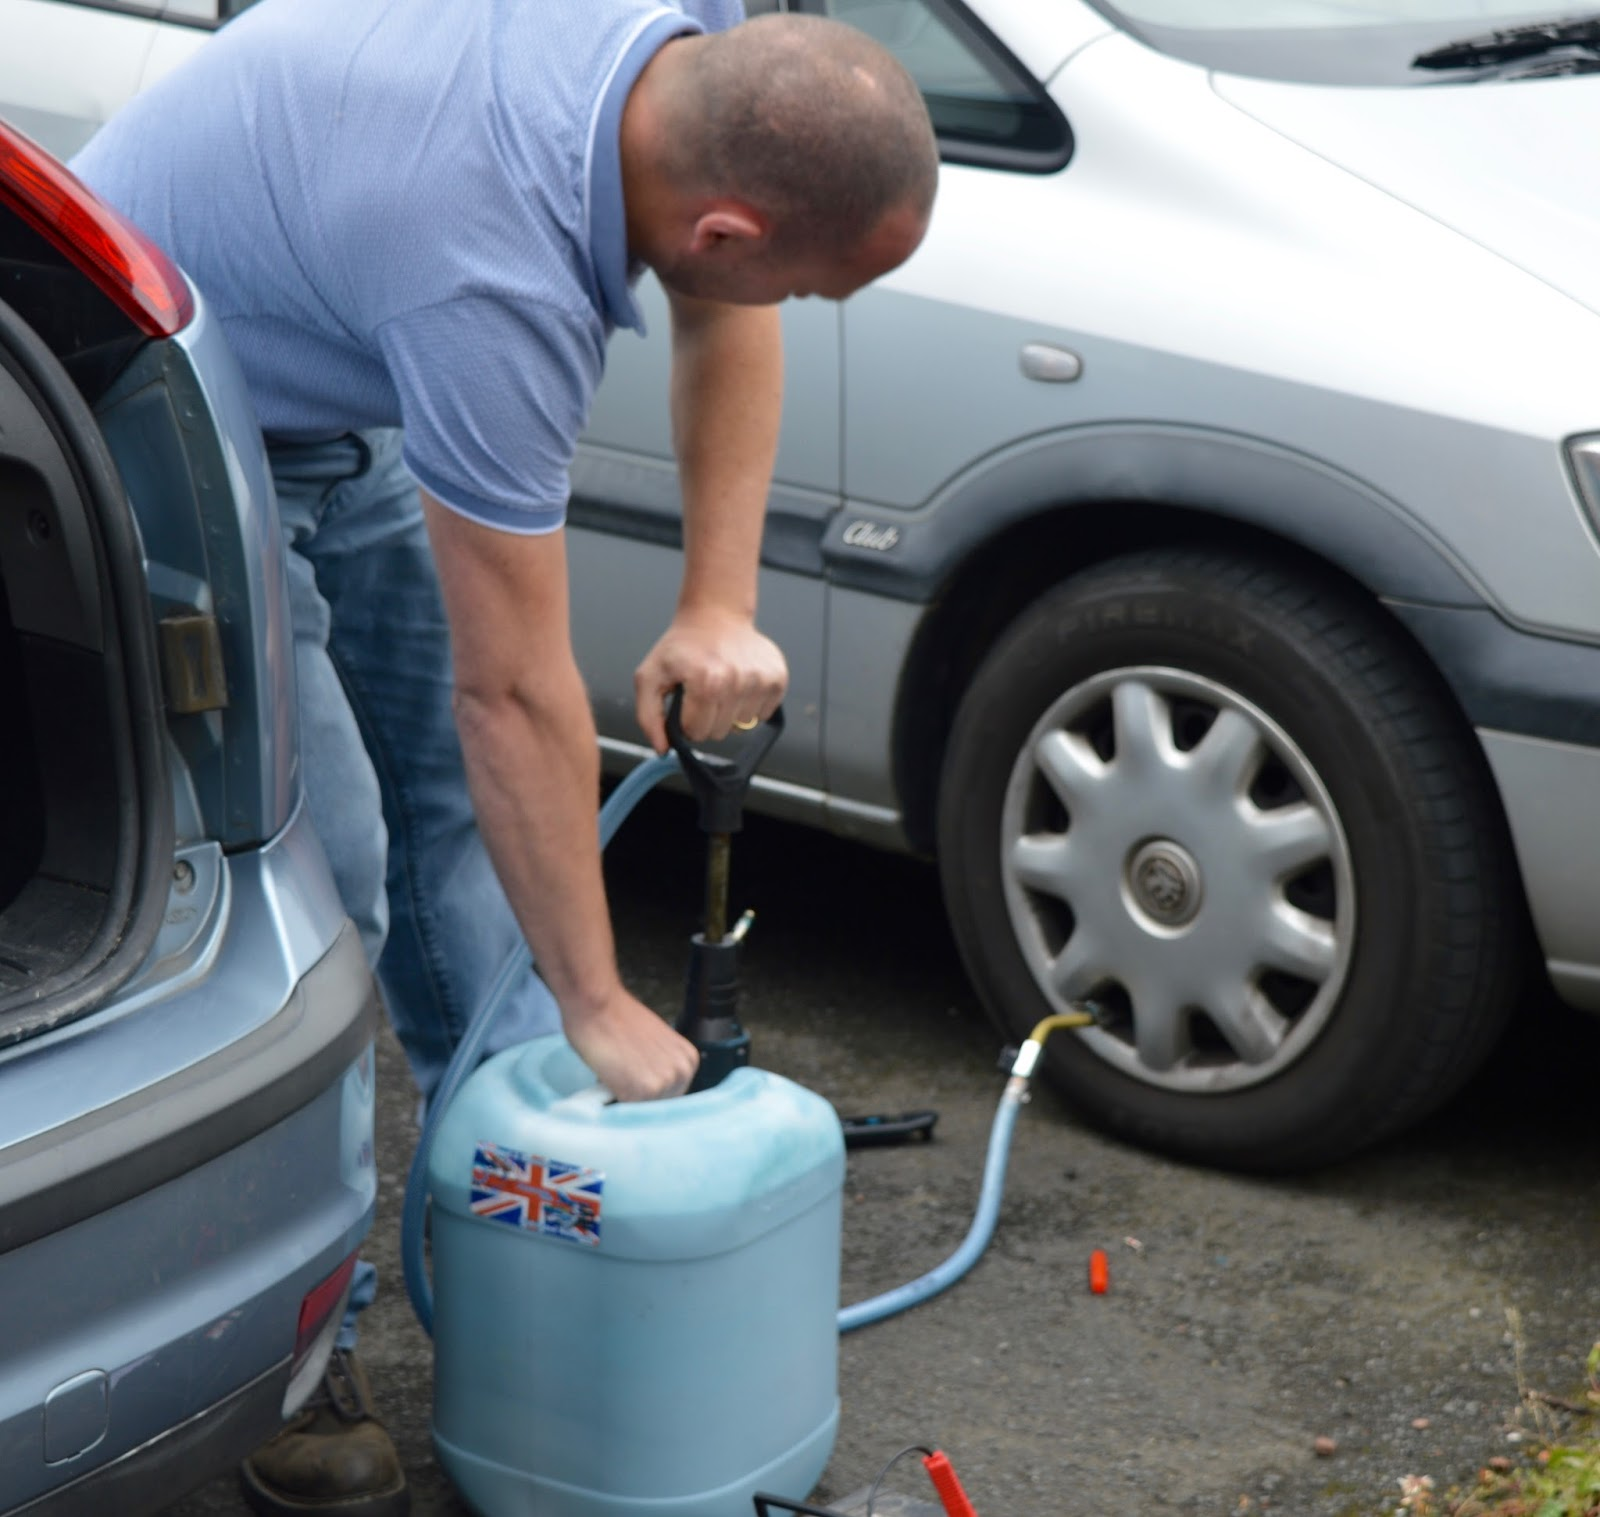 Prepare for a summer on the road and prevent punctures with Puncture Safe NE